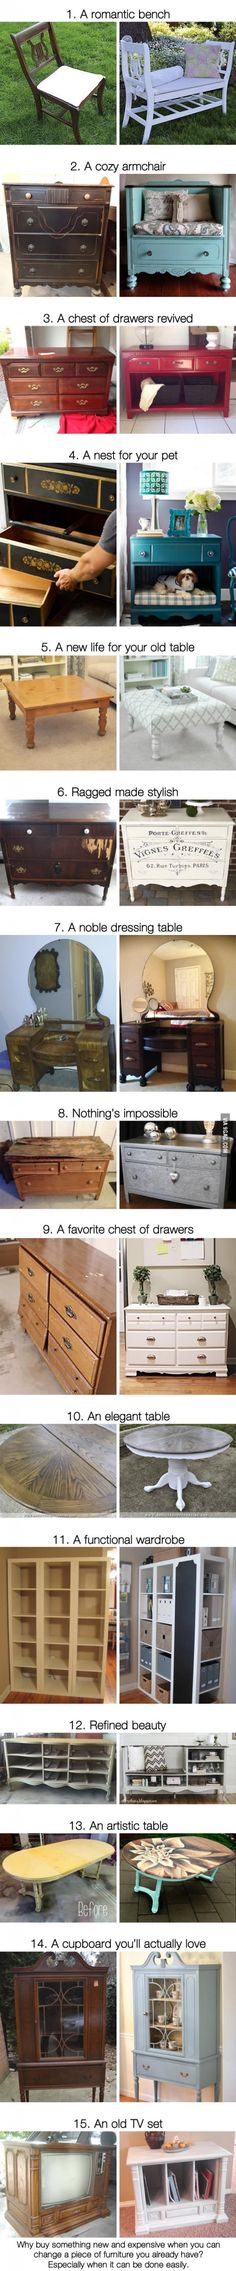 15 brilliant ideas for giving new life to old furniture                                                                                                                                                     More